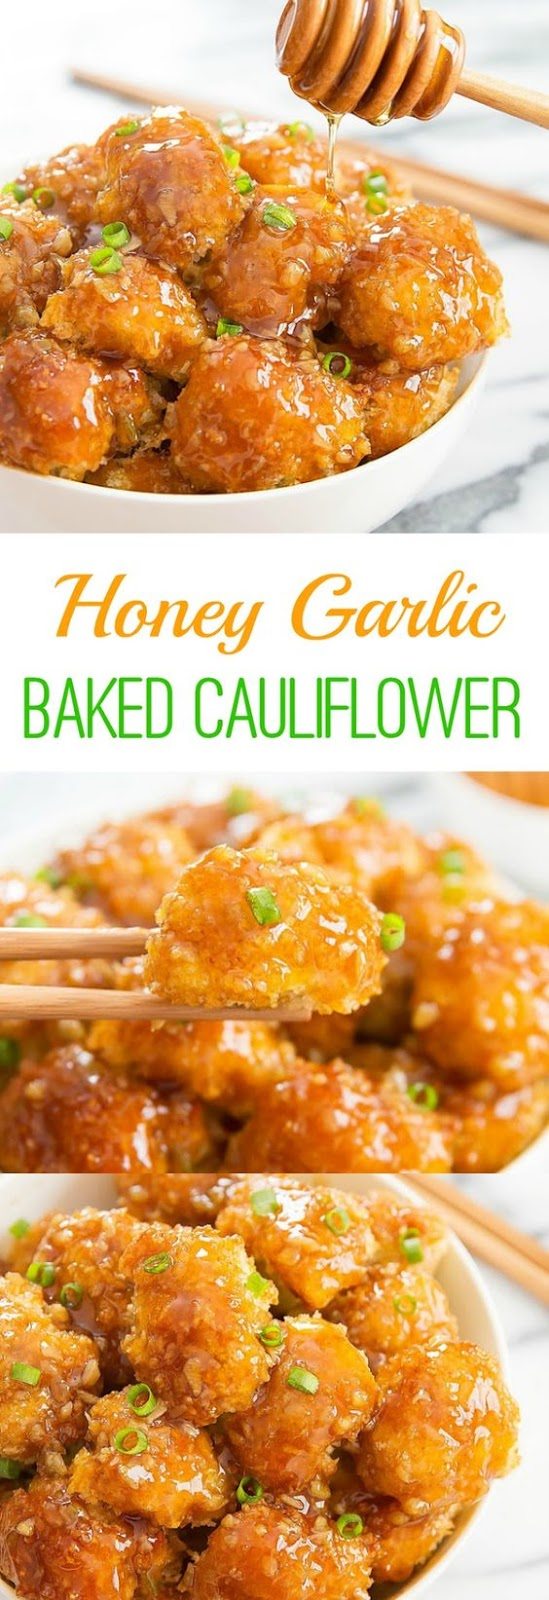 Crunchy baked breaded cauliflower pieces are coated with honey garlic sauce. It's an easy and delicious weeknight meal.